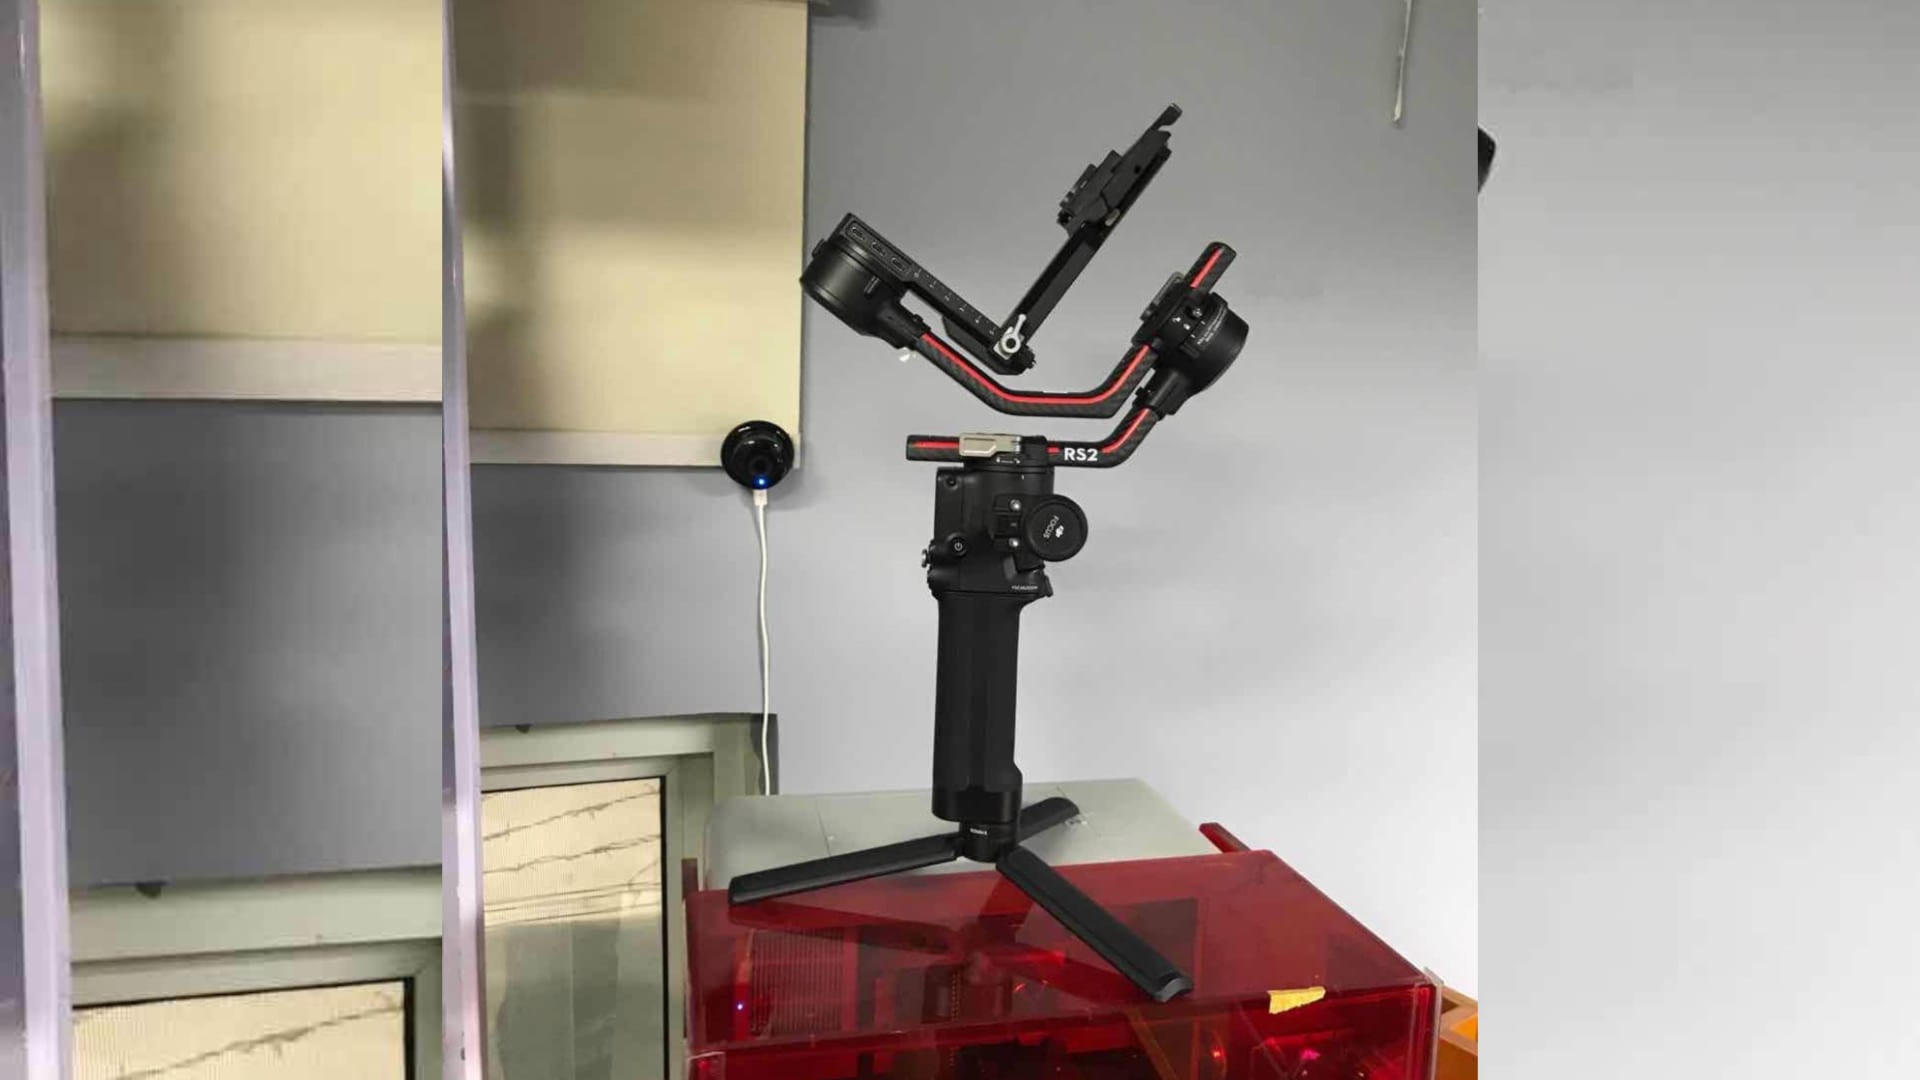 Leaked photo DJI Ronin RS2 Gimbal shows on Twitter